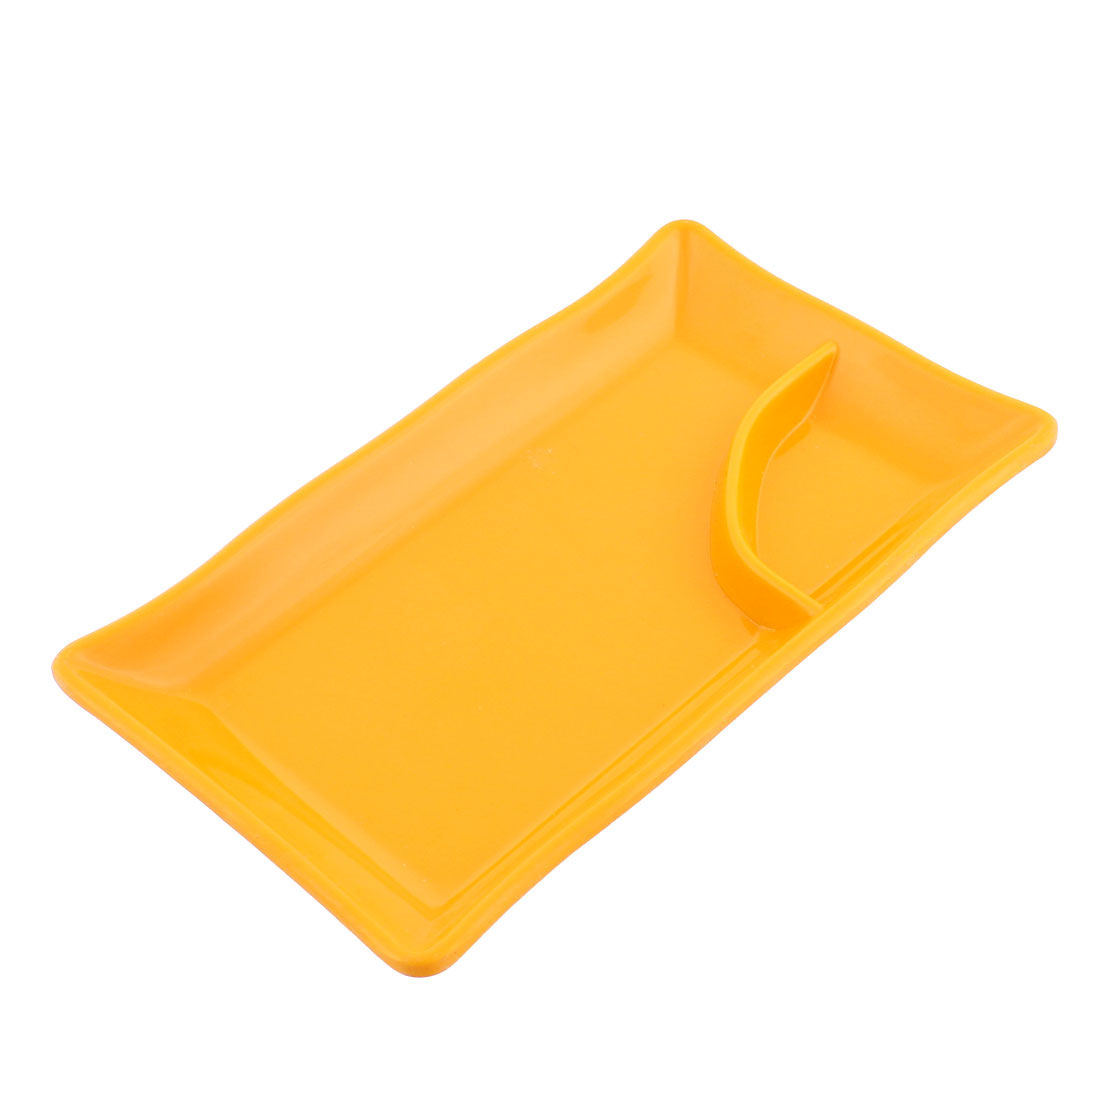 Plastic 2 Compartments Dumplings Sushi Sauce Mustard Dipping Dish Plate Orange